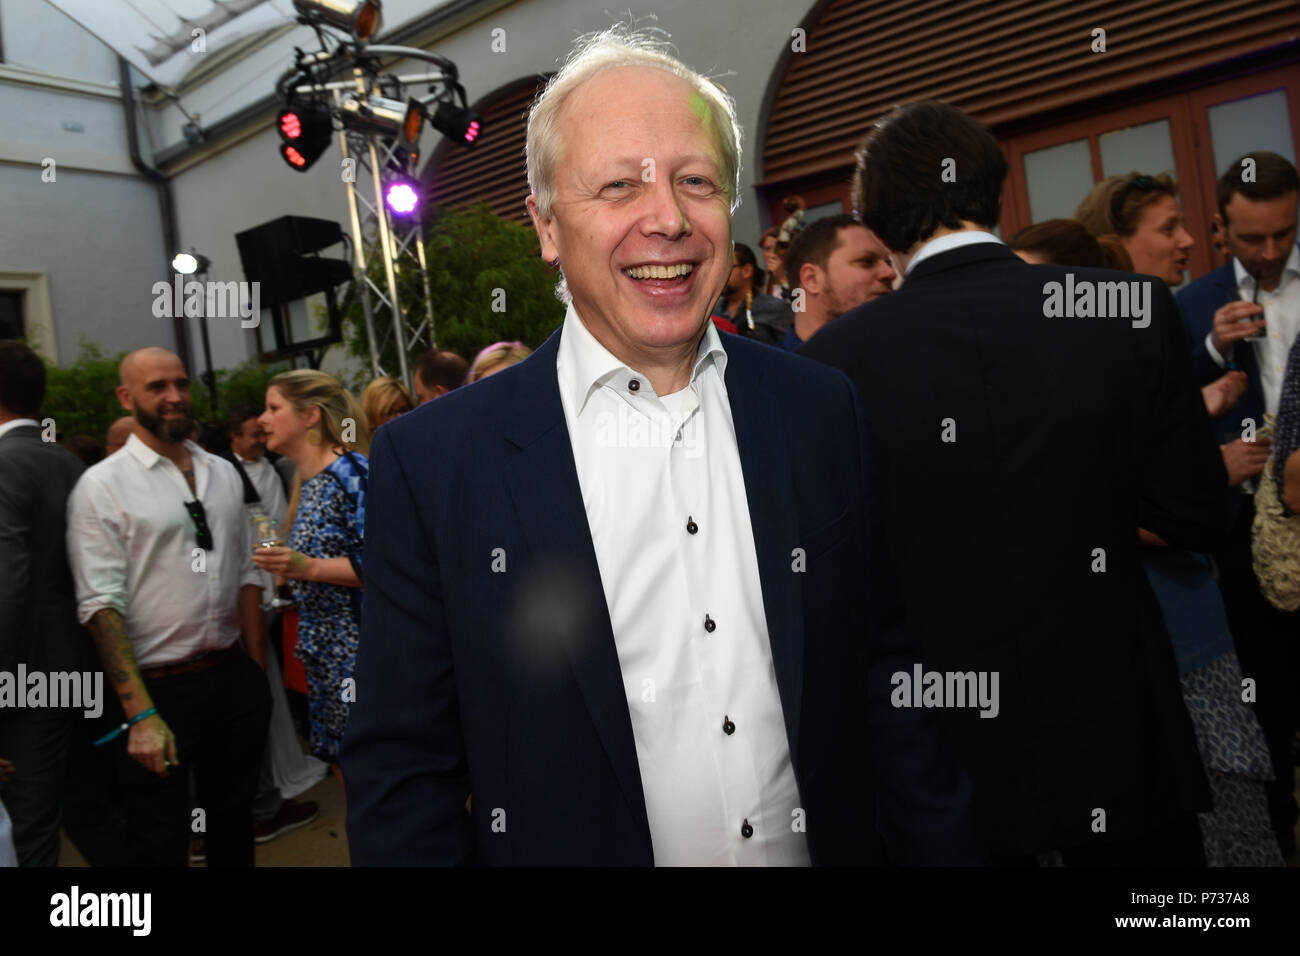 03 July 2018, Germany, Munich: Journalist Tom Buhrow attends the Bavaria Film reception at the Kuenstlerhaus, an event hosted on occasion of the Film Festival Munich. Photo: Felix Hörhager/dpa - Stock Image